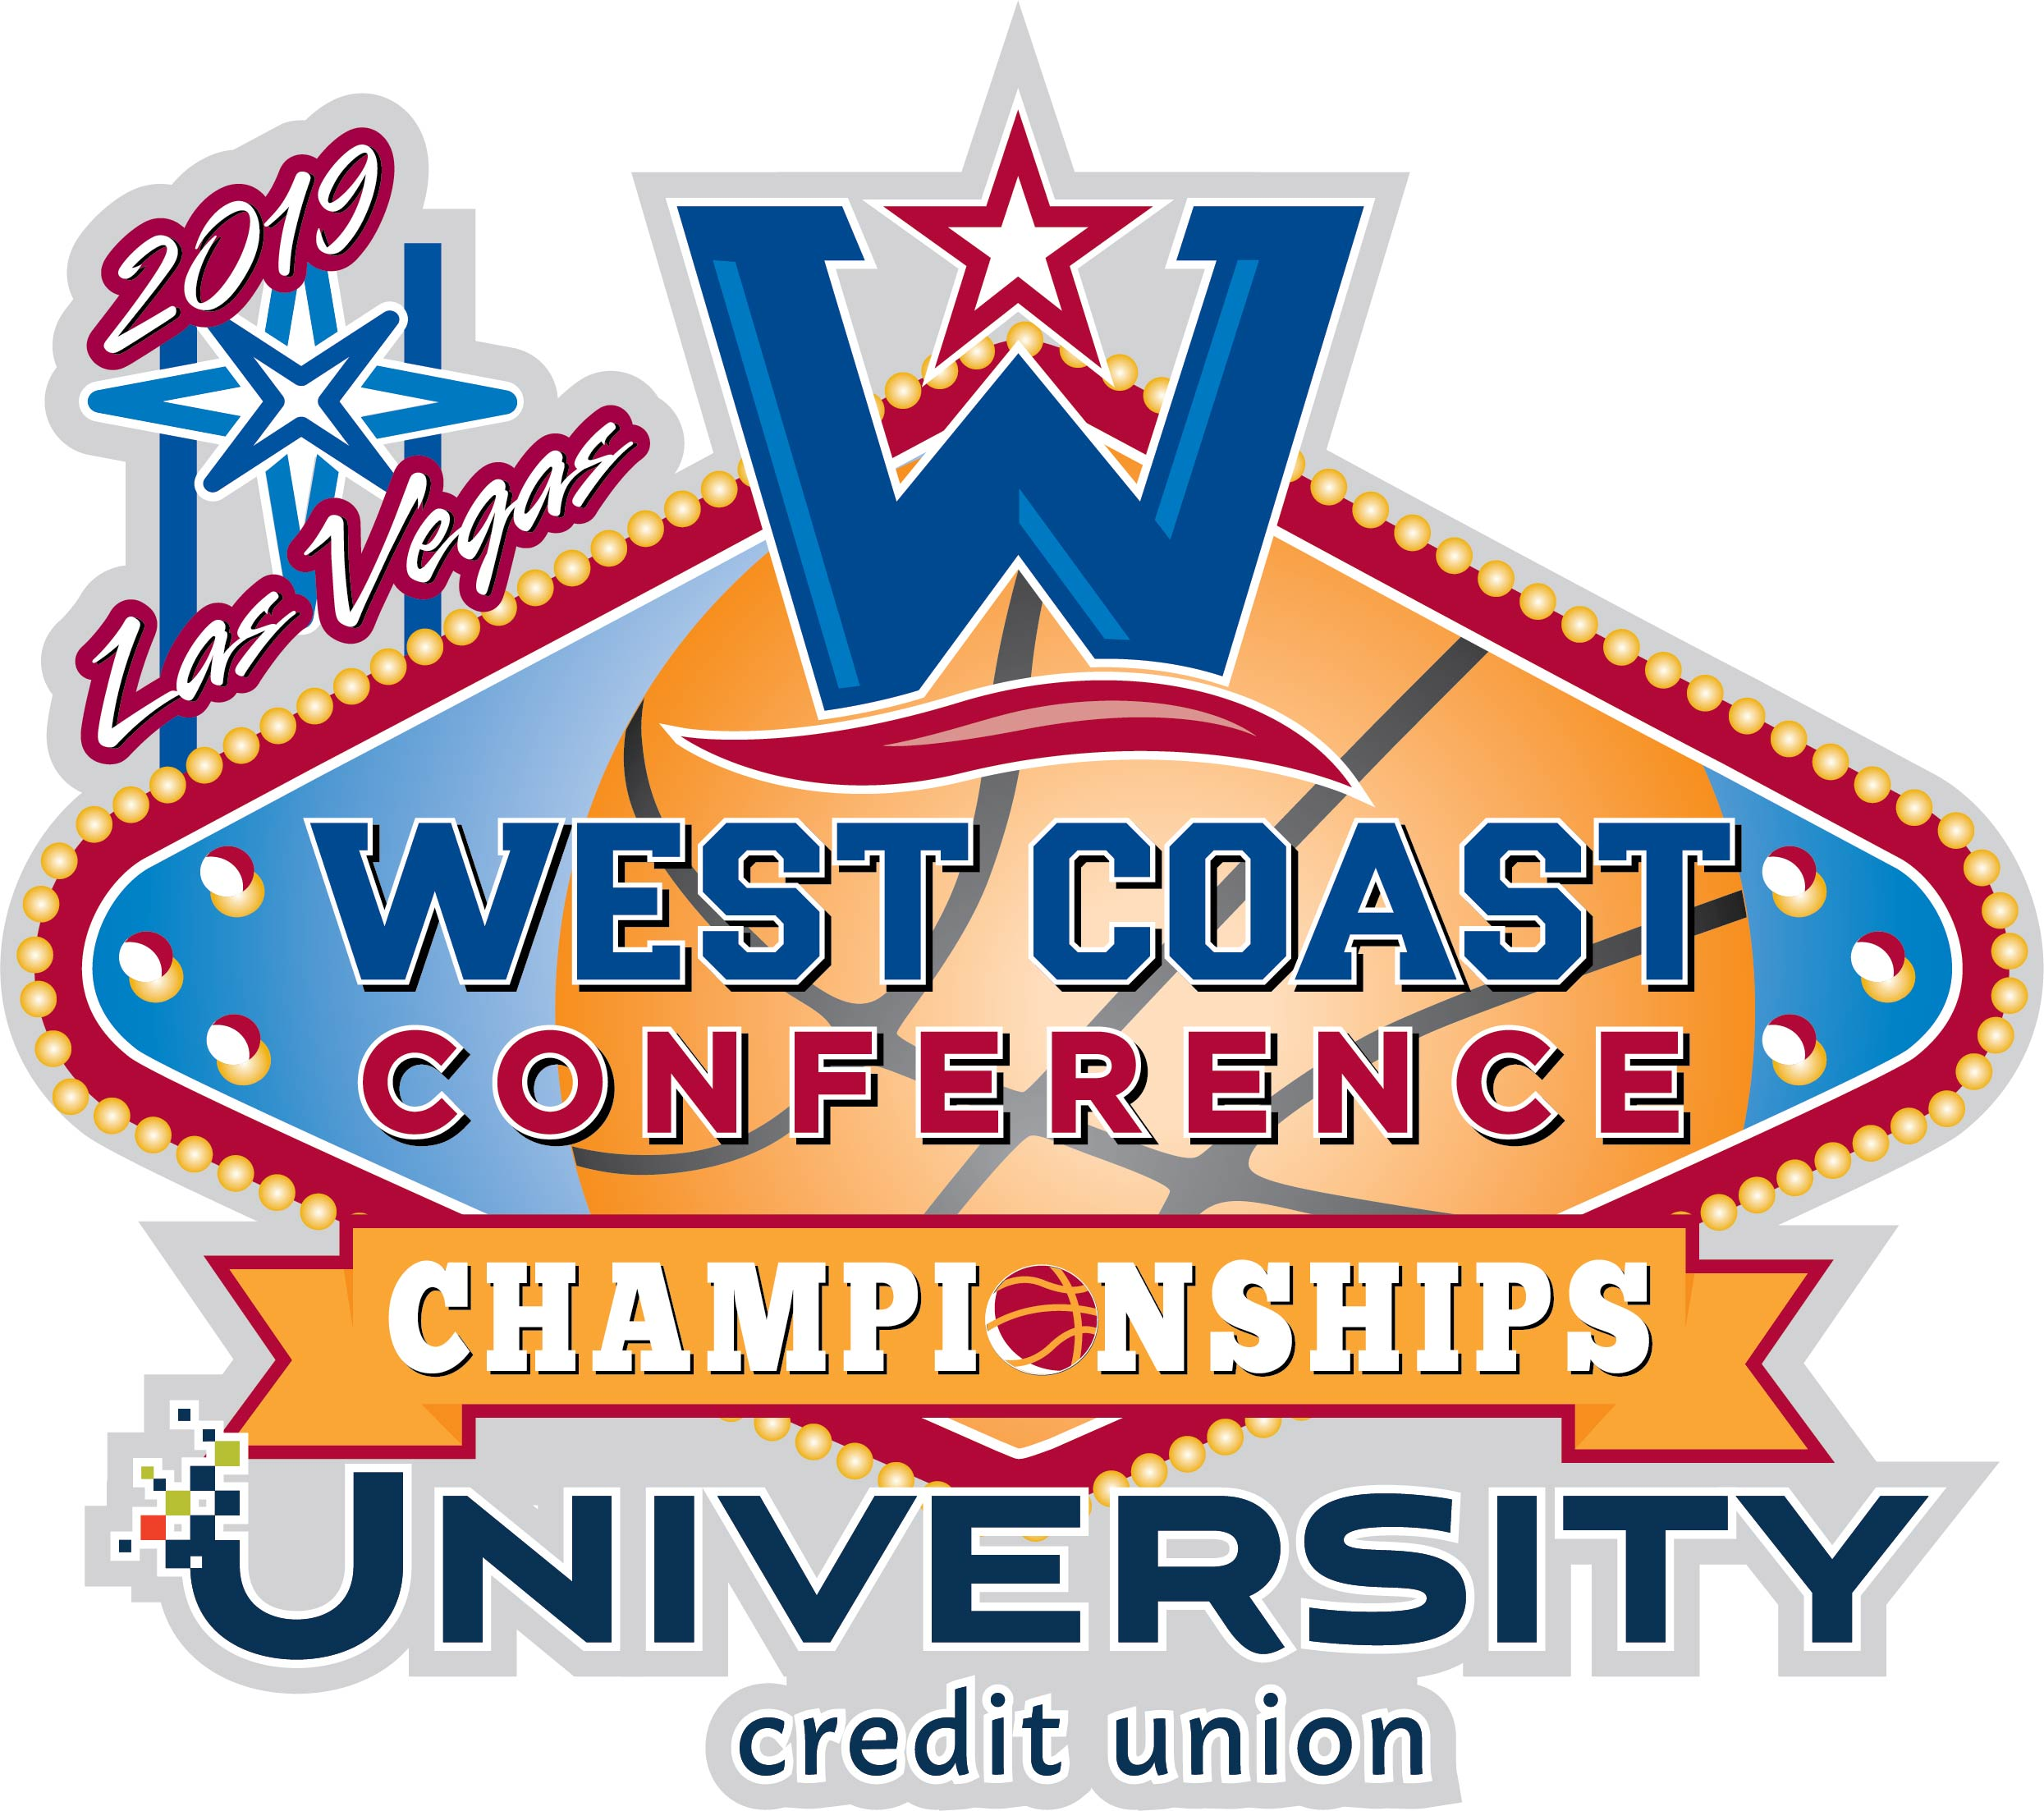 WCC-UCU-Tournament-logo-2019.jpg